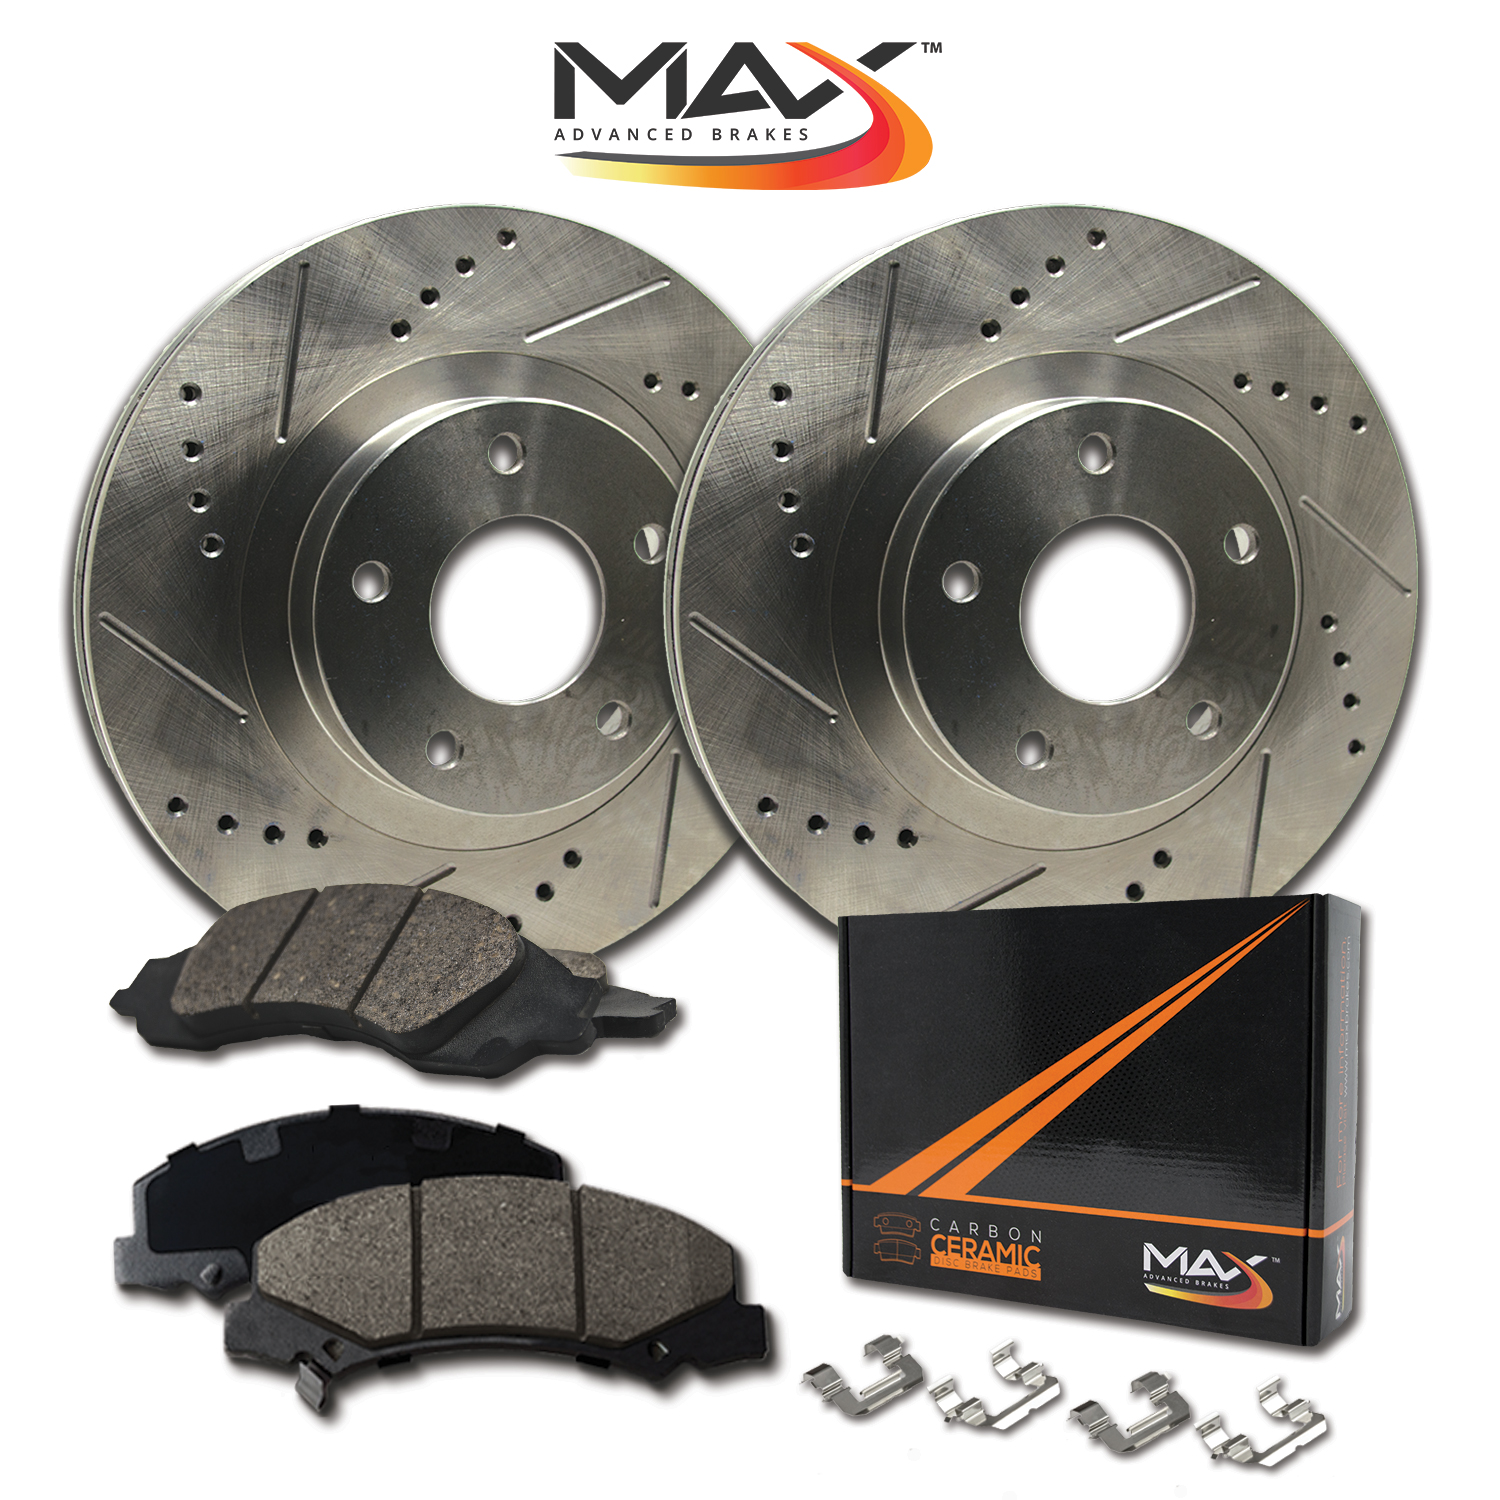 [REAR KIT] Slotted & Cross Drilled Rotors with Ceramic Pads & Hardware Kit